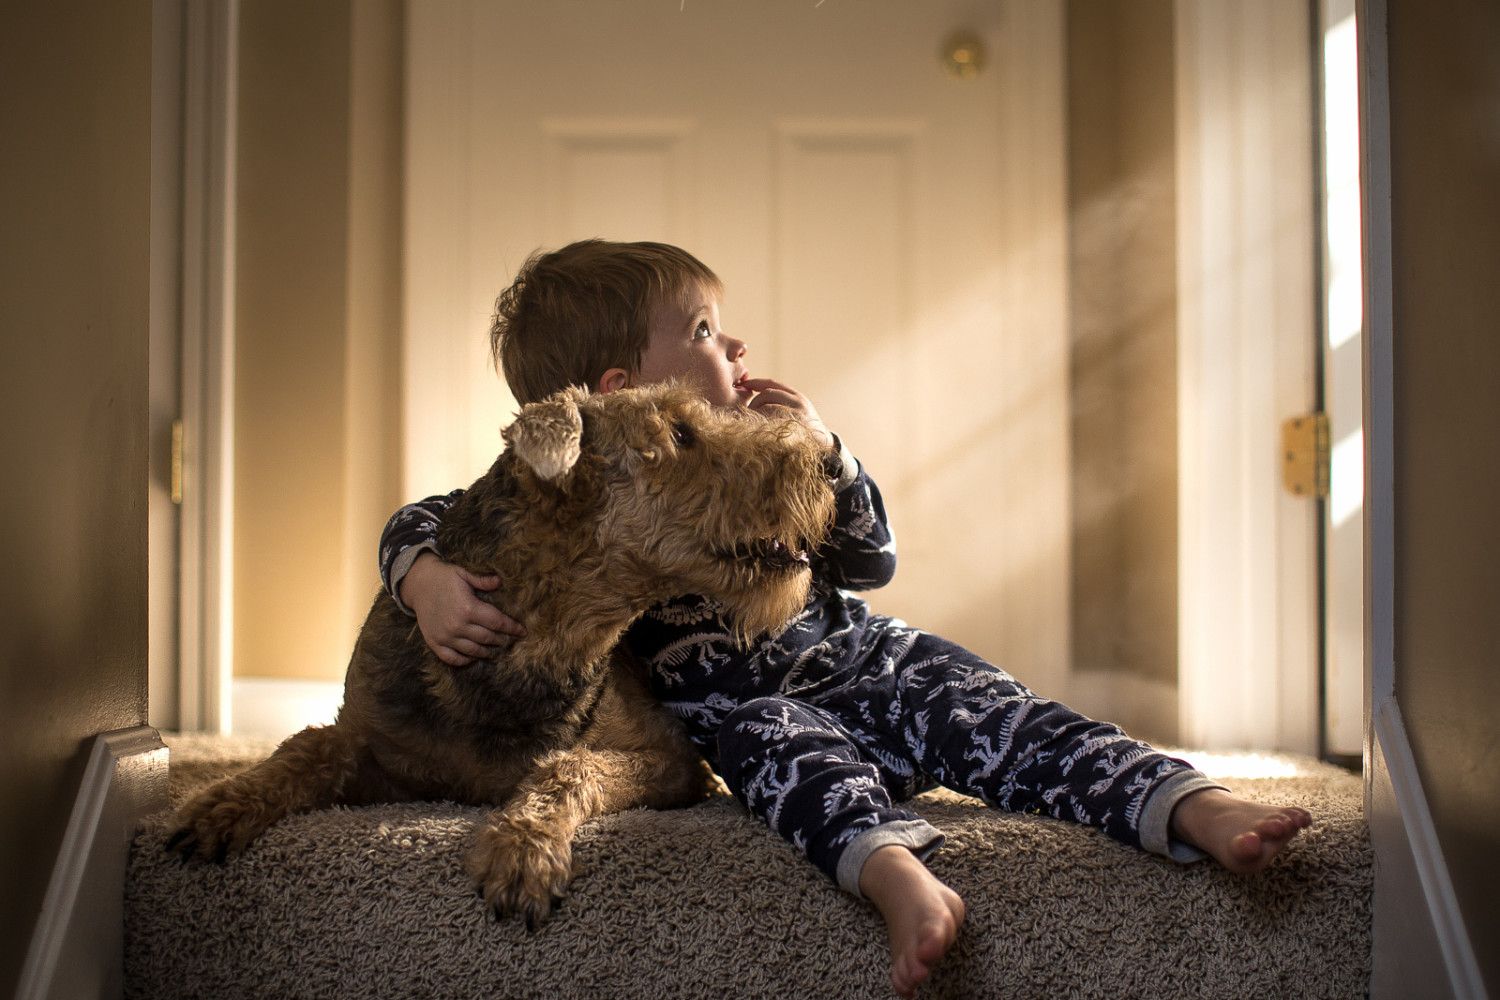 How to Use the Natural Light in Your Home to Capture Amazing Lifestyle Photos